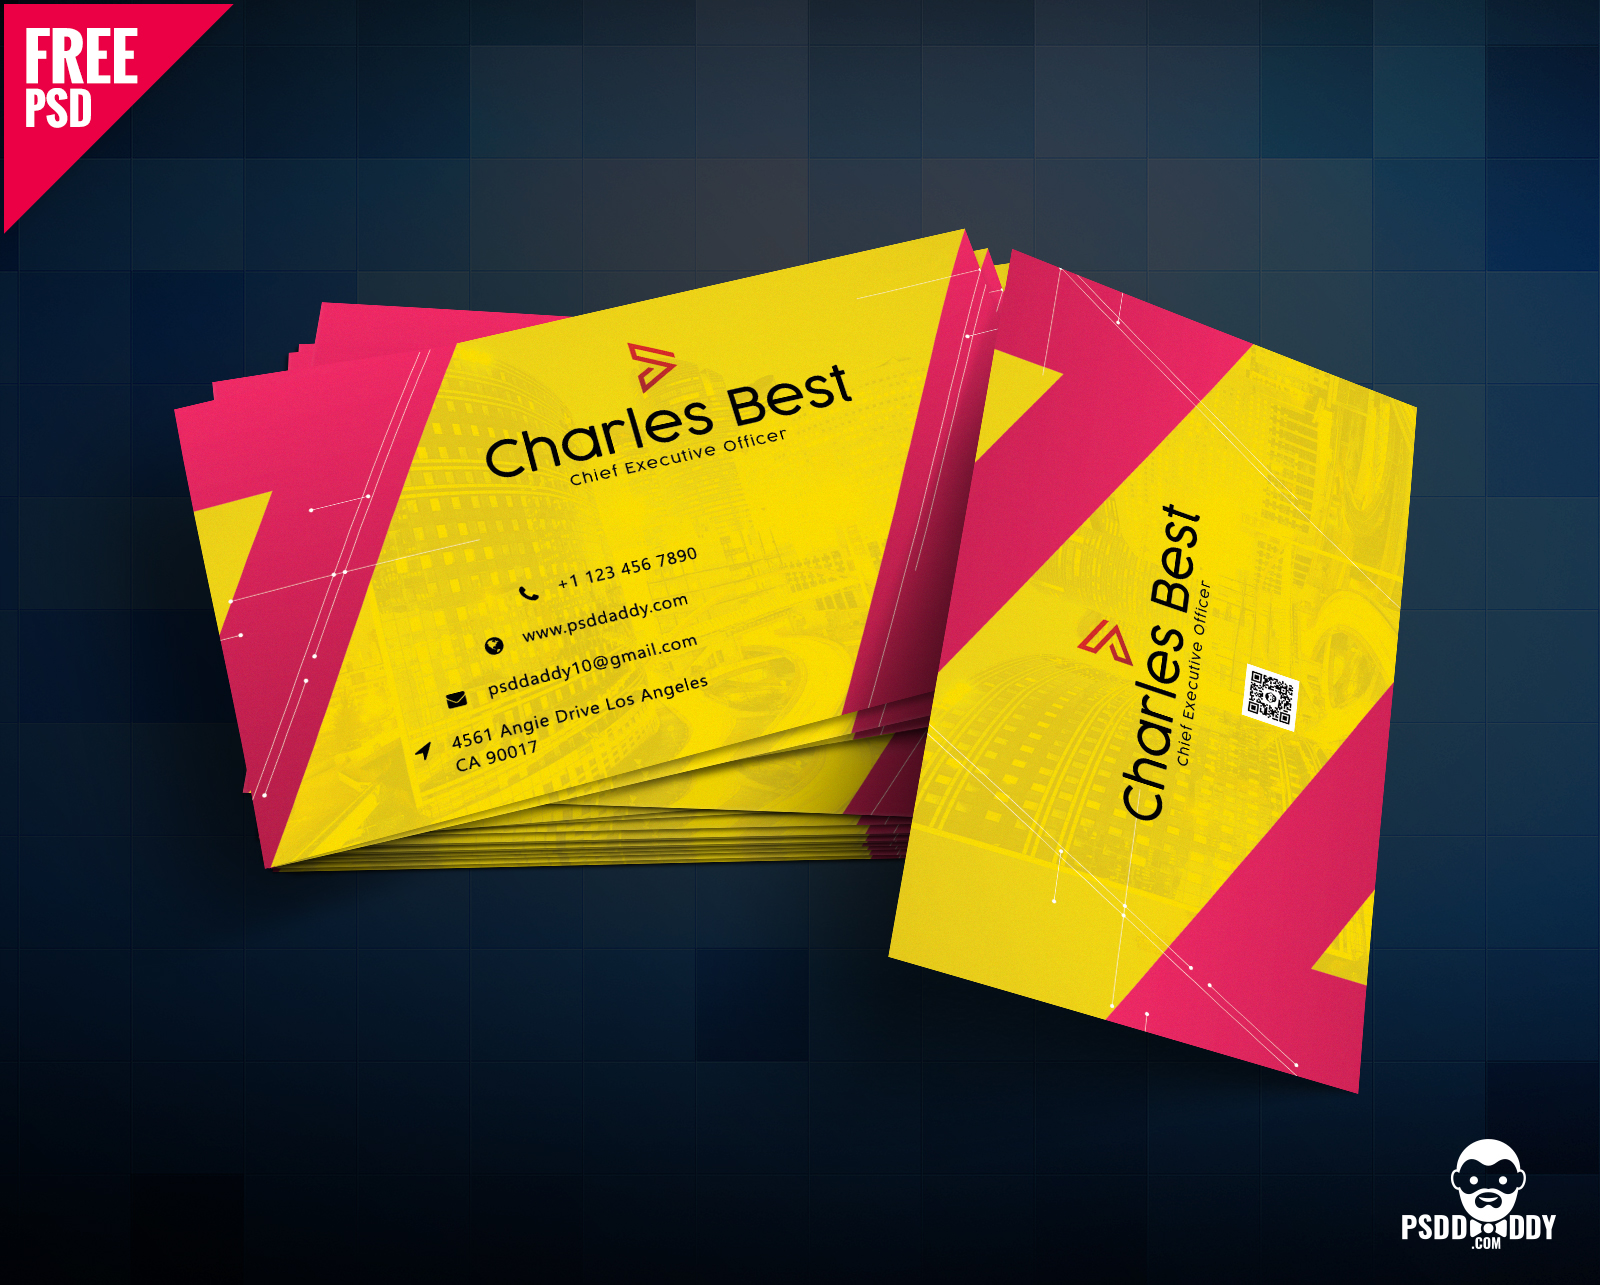 Free Business Card PSD Templates - Business card templates psd free download